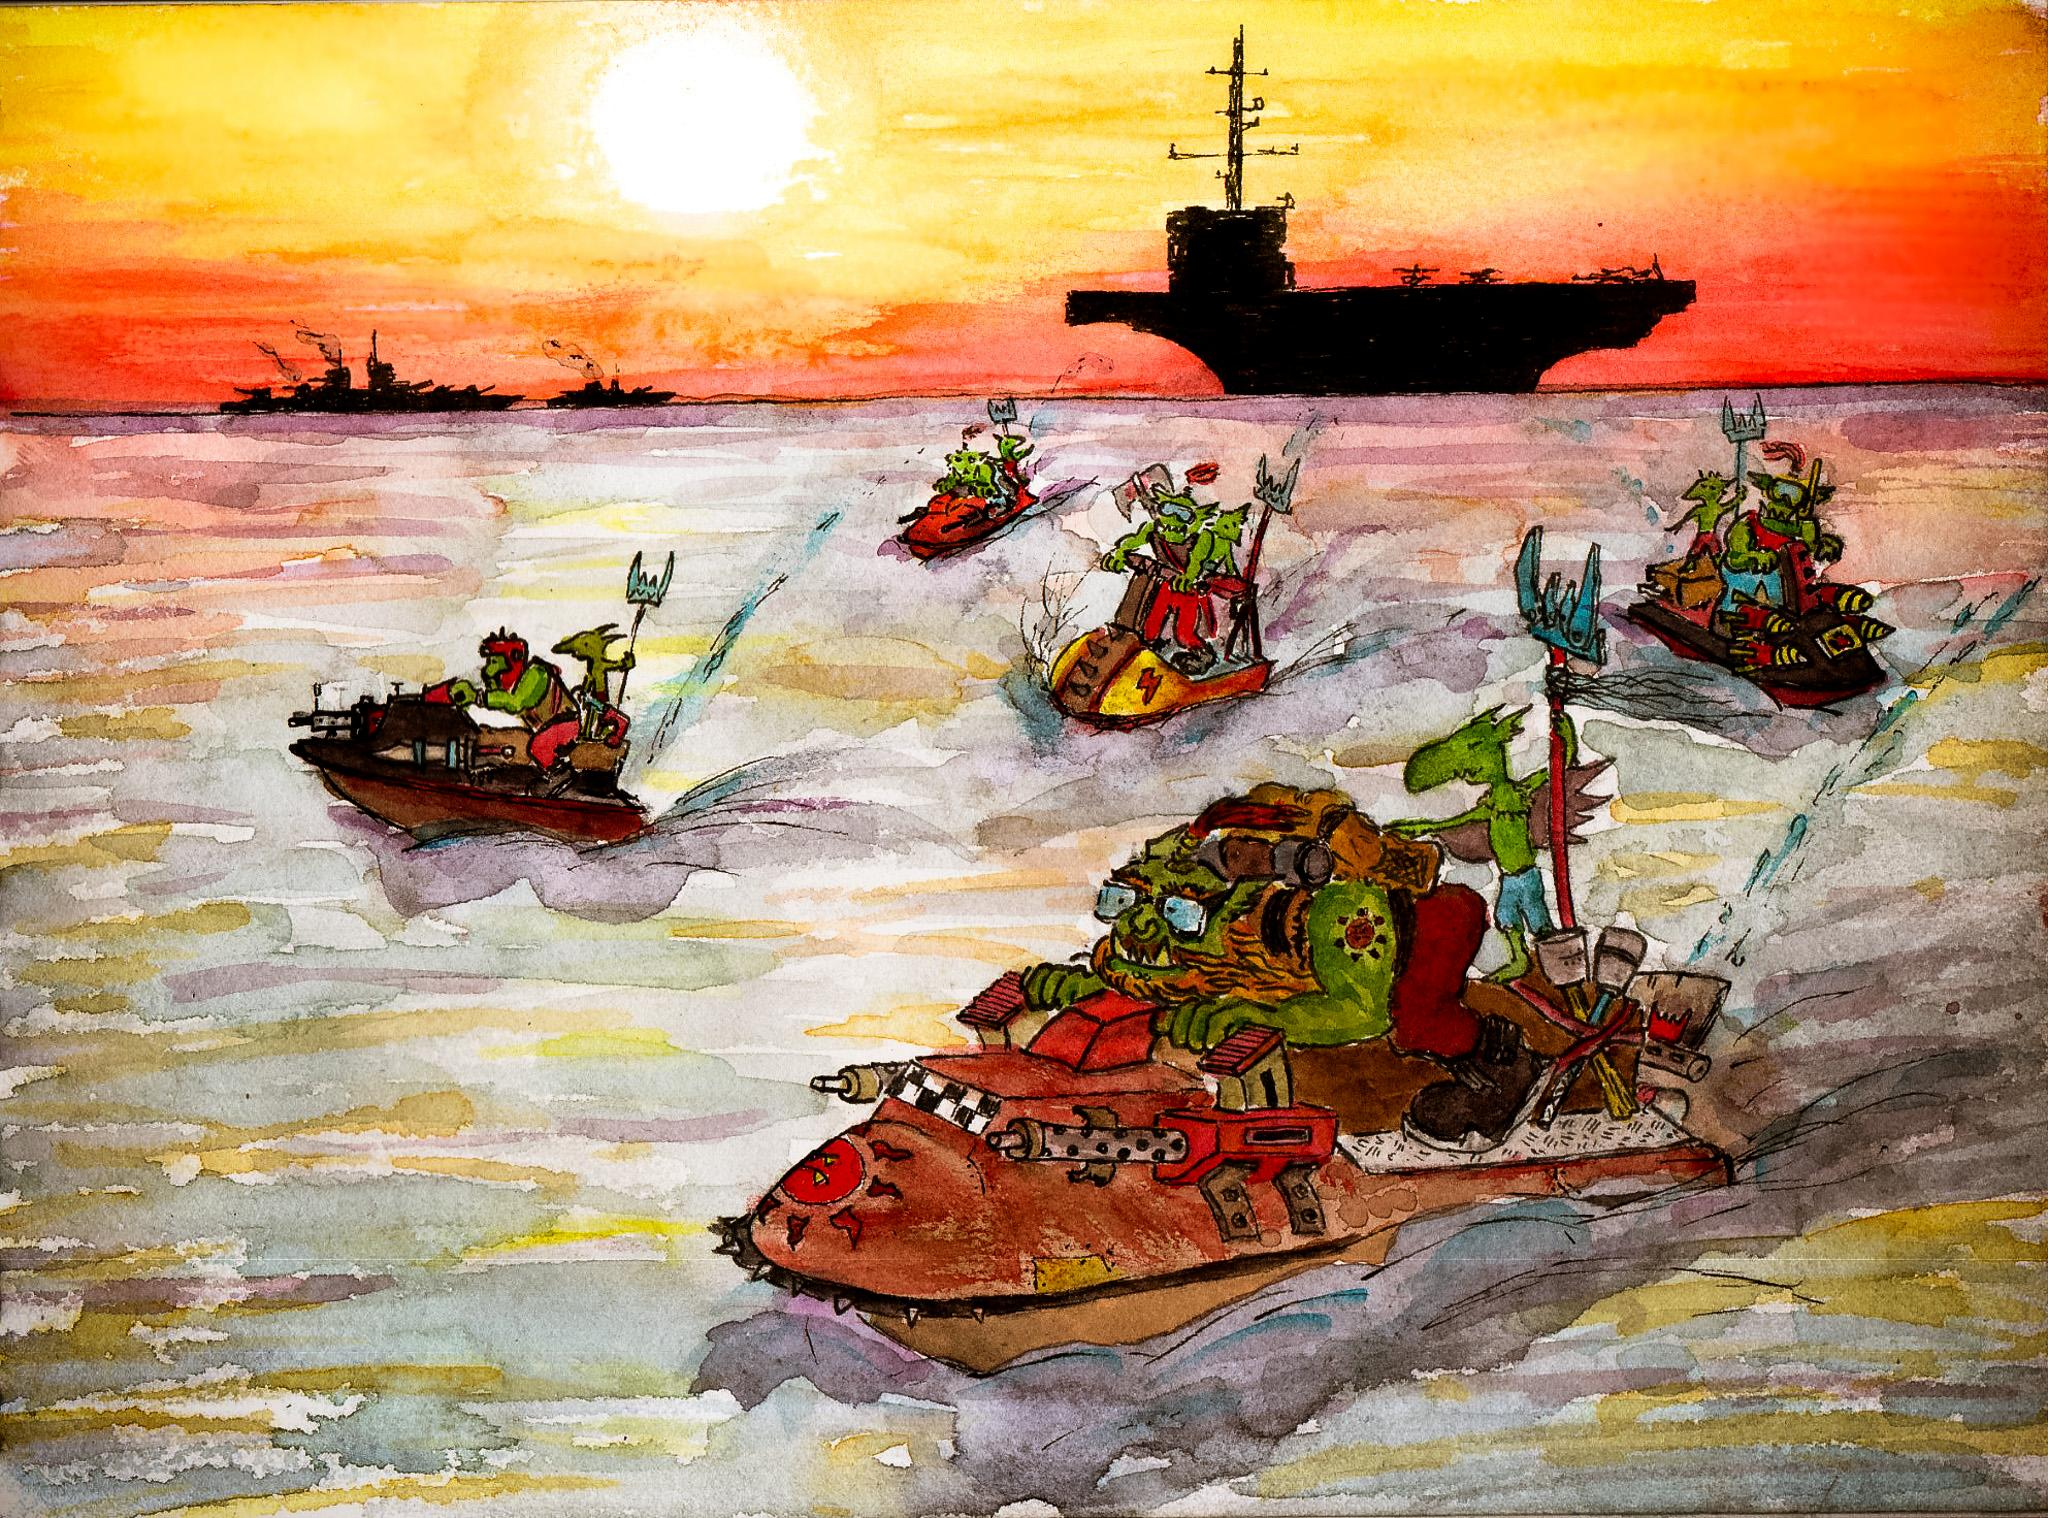 Boat, Drawing, Graphic, Grots, Humour, Illustration, Orks, Ship, Sketch